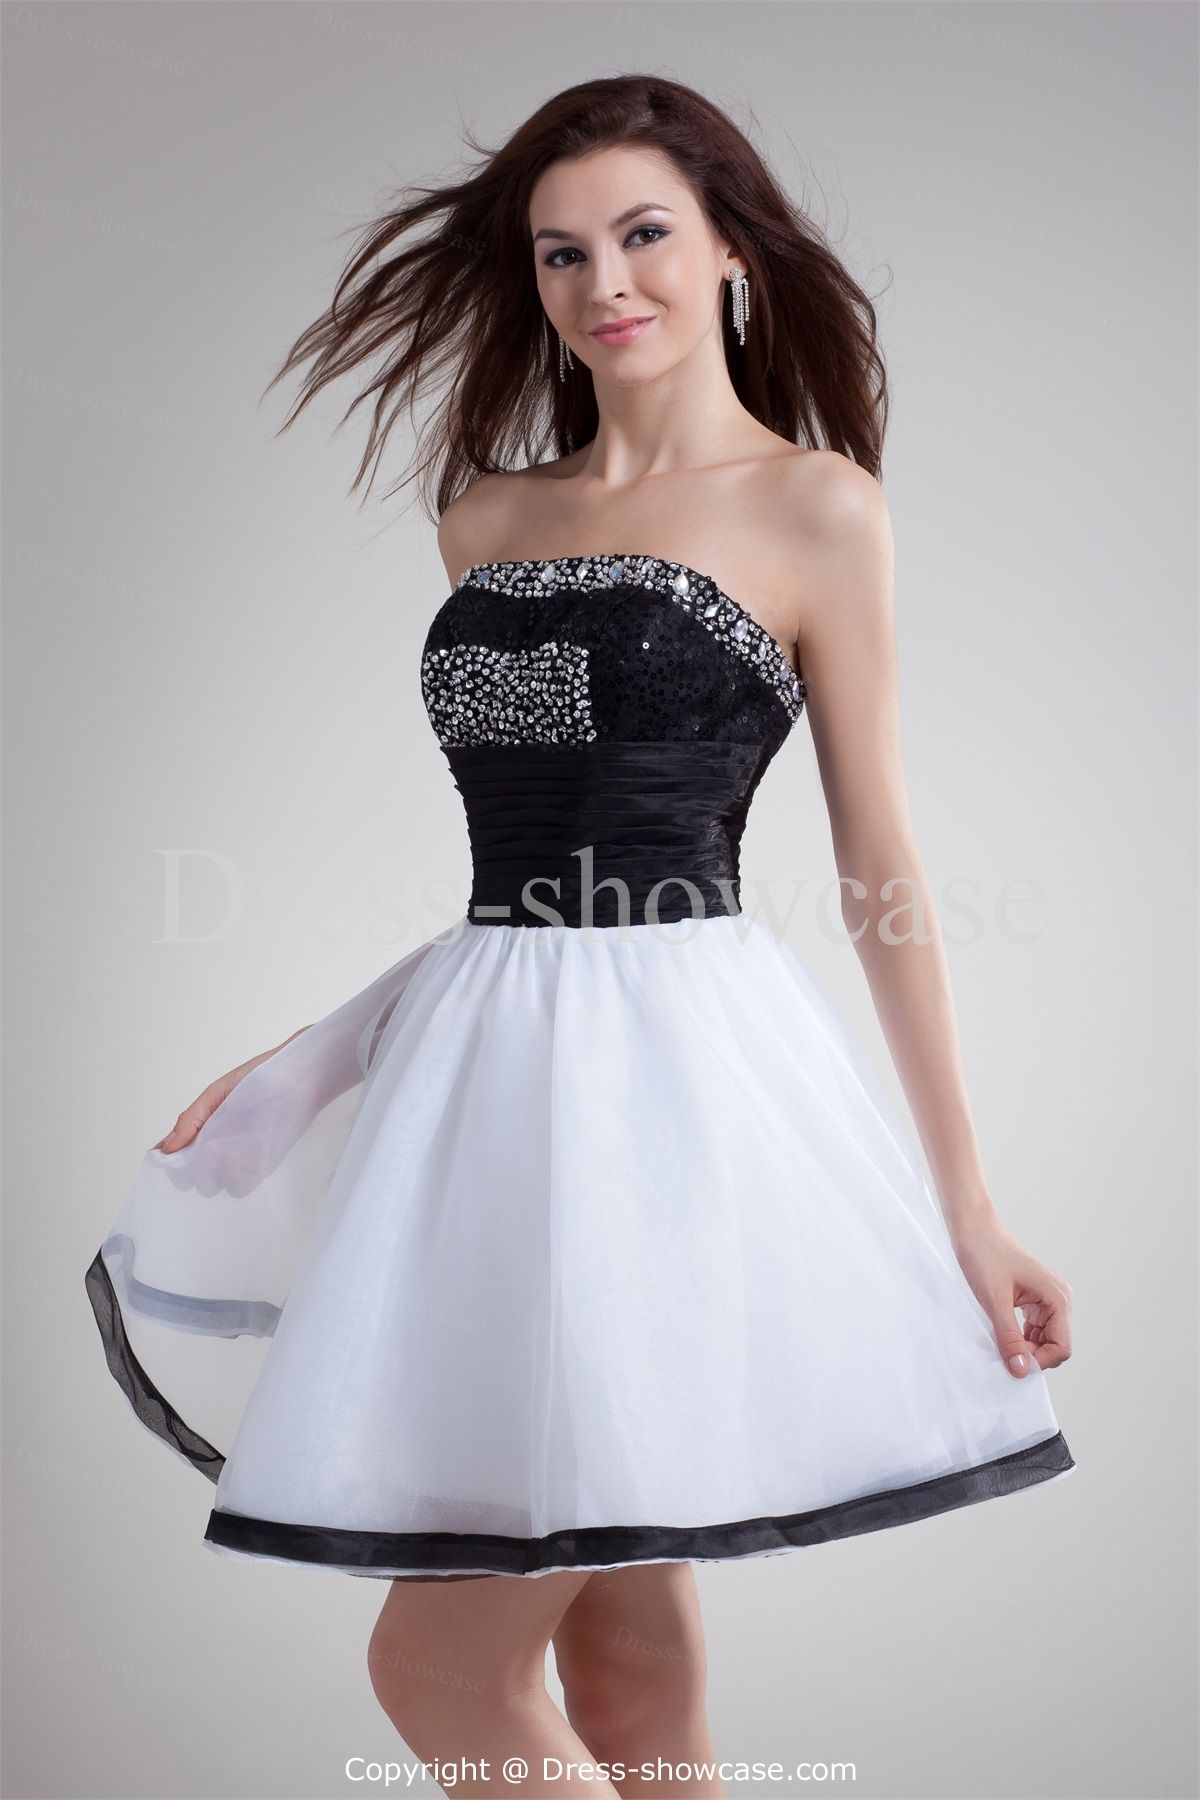 Get Suitable Dress with Black Cocktail Dresses : Black White Short ...